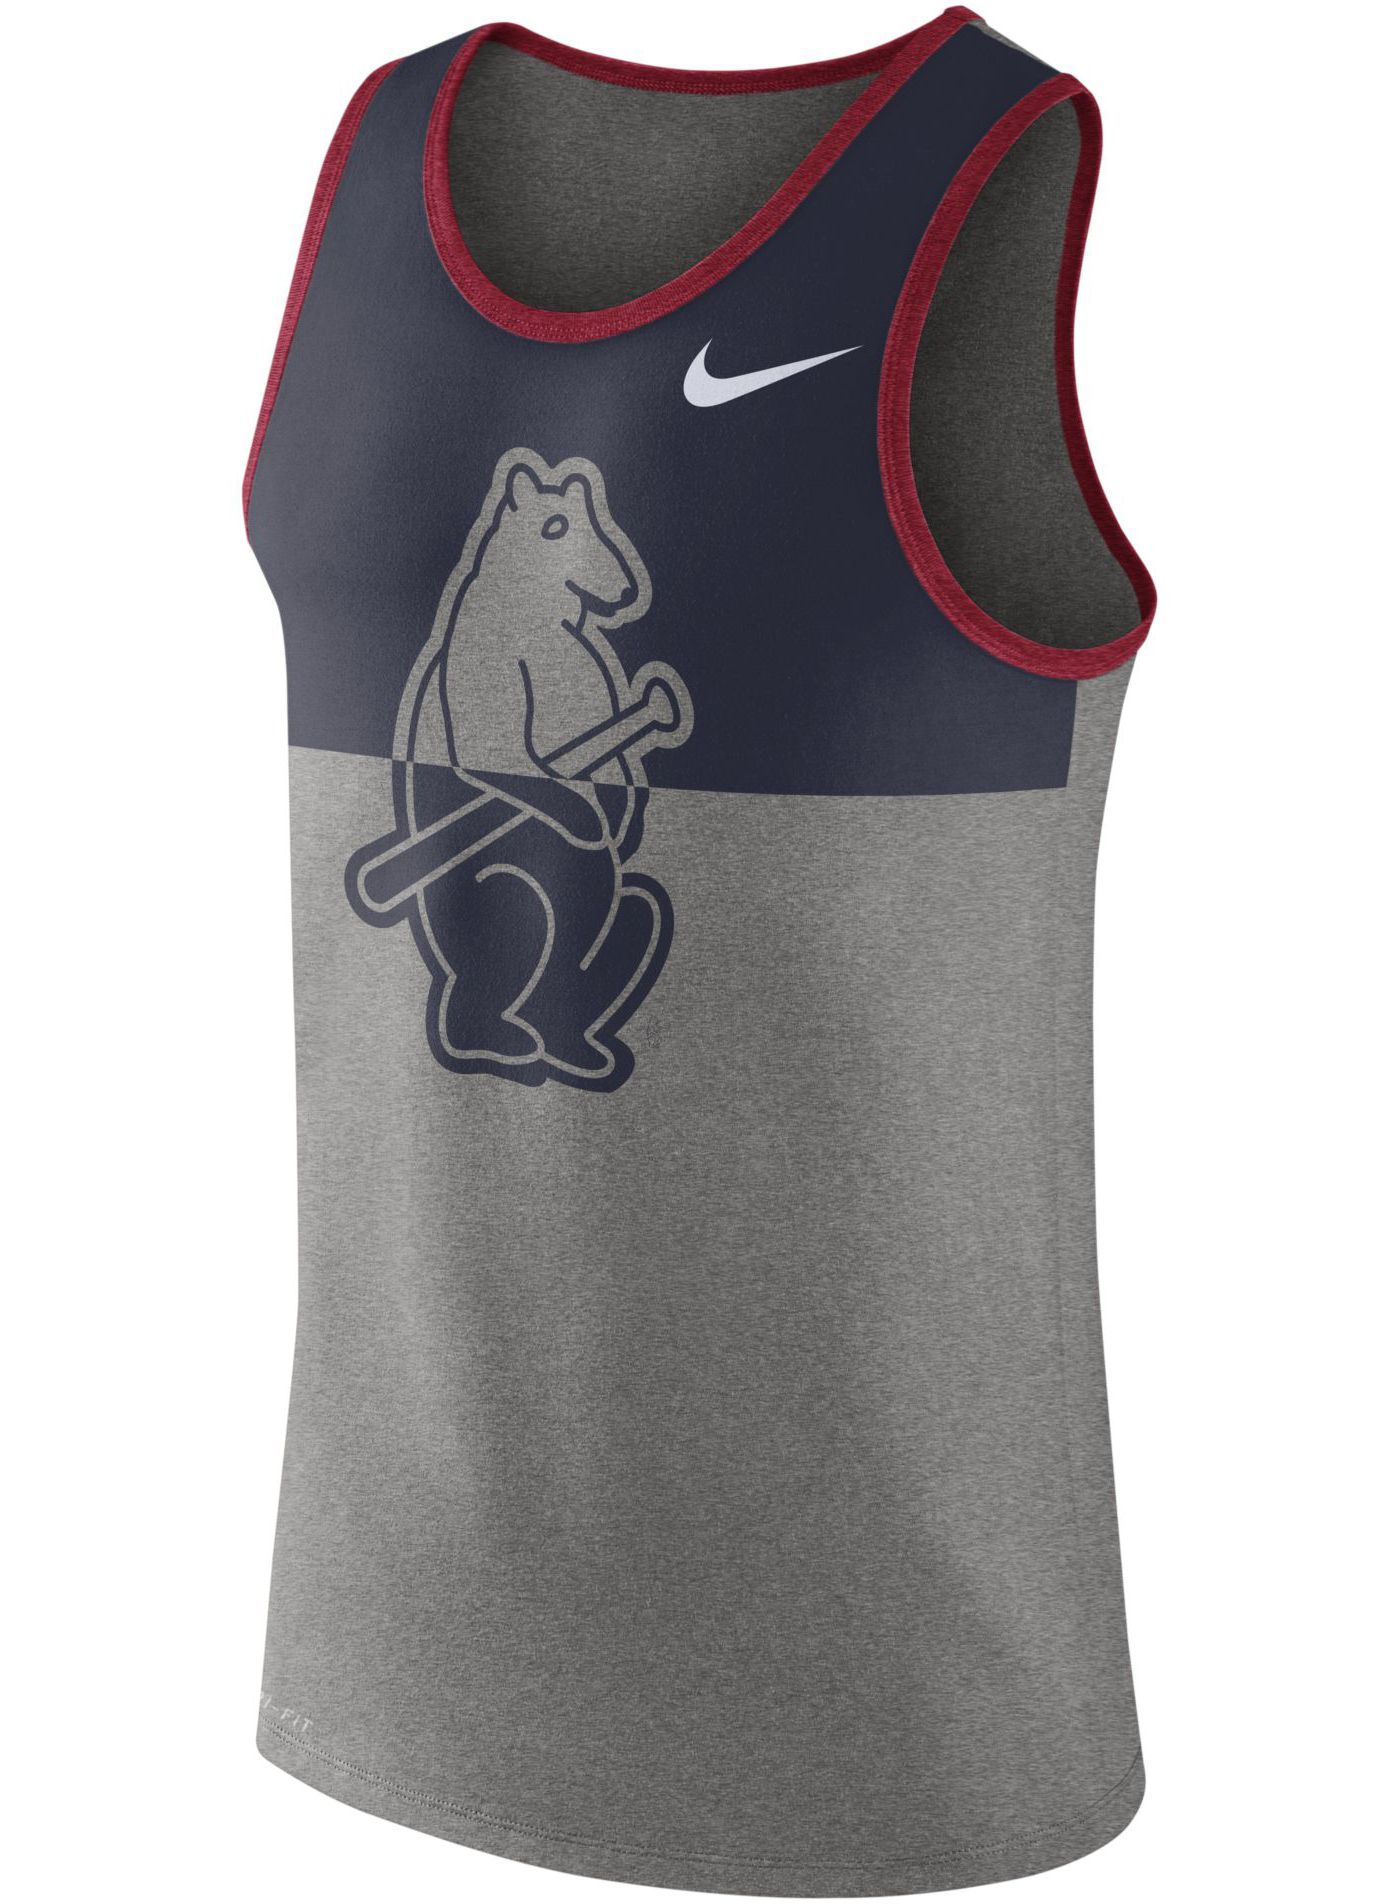 Nike Men's Chicago Cubs Dri-FIT Tank Top